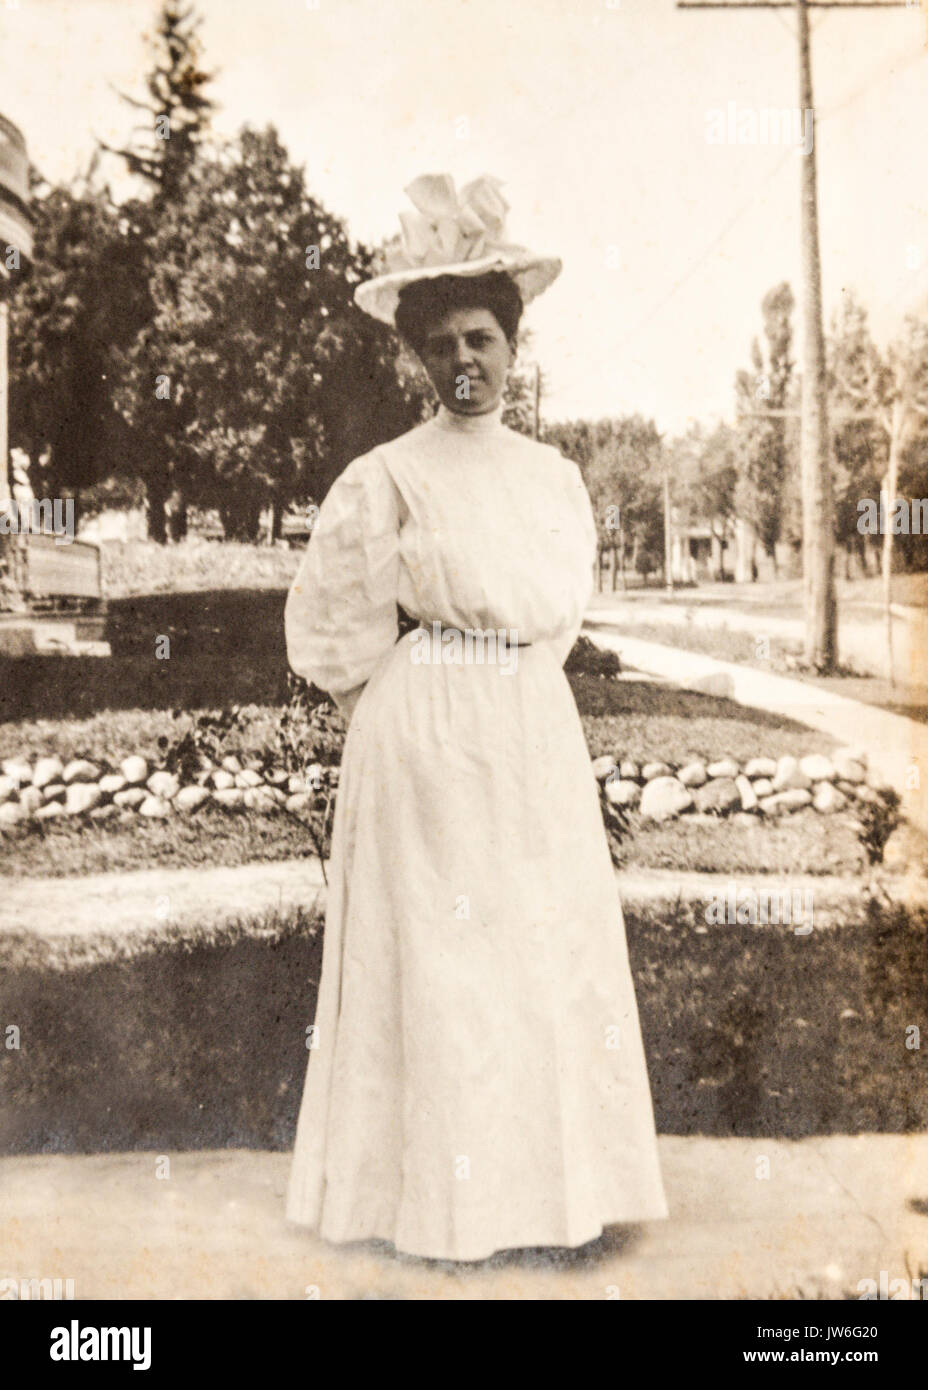 Old photo from 1907 to 1908 In the US state of Minnesota Stock Photo